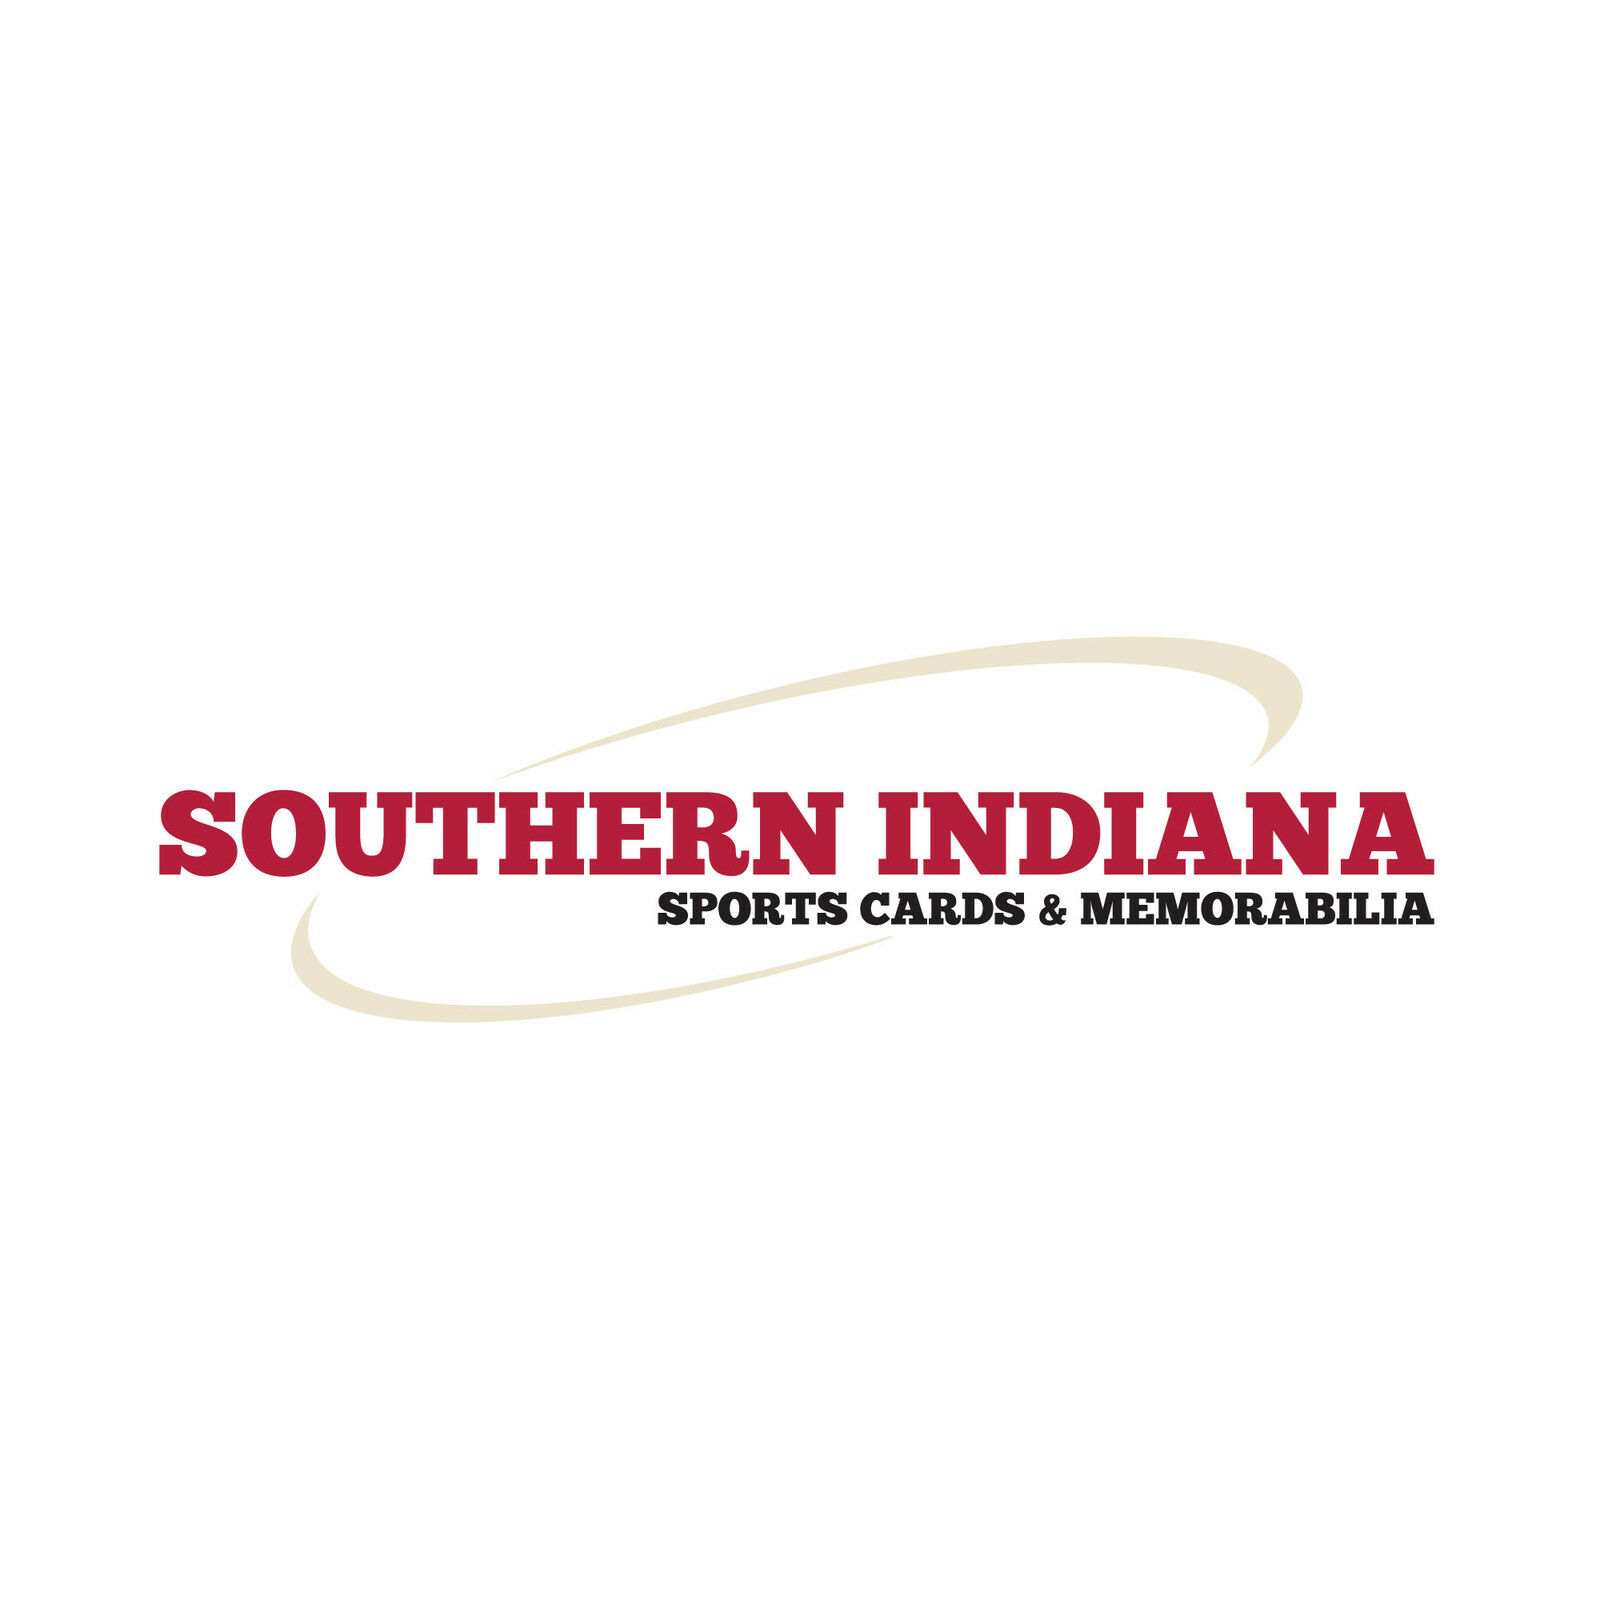 Southern Indiana Sports Cards